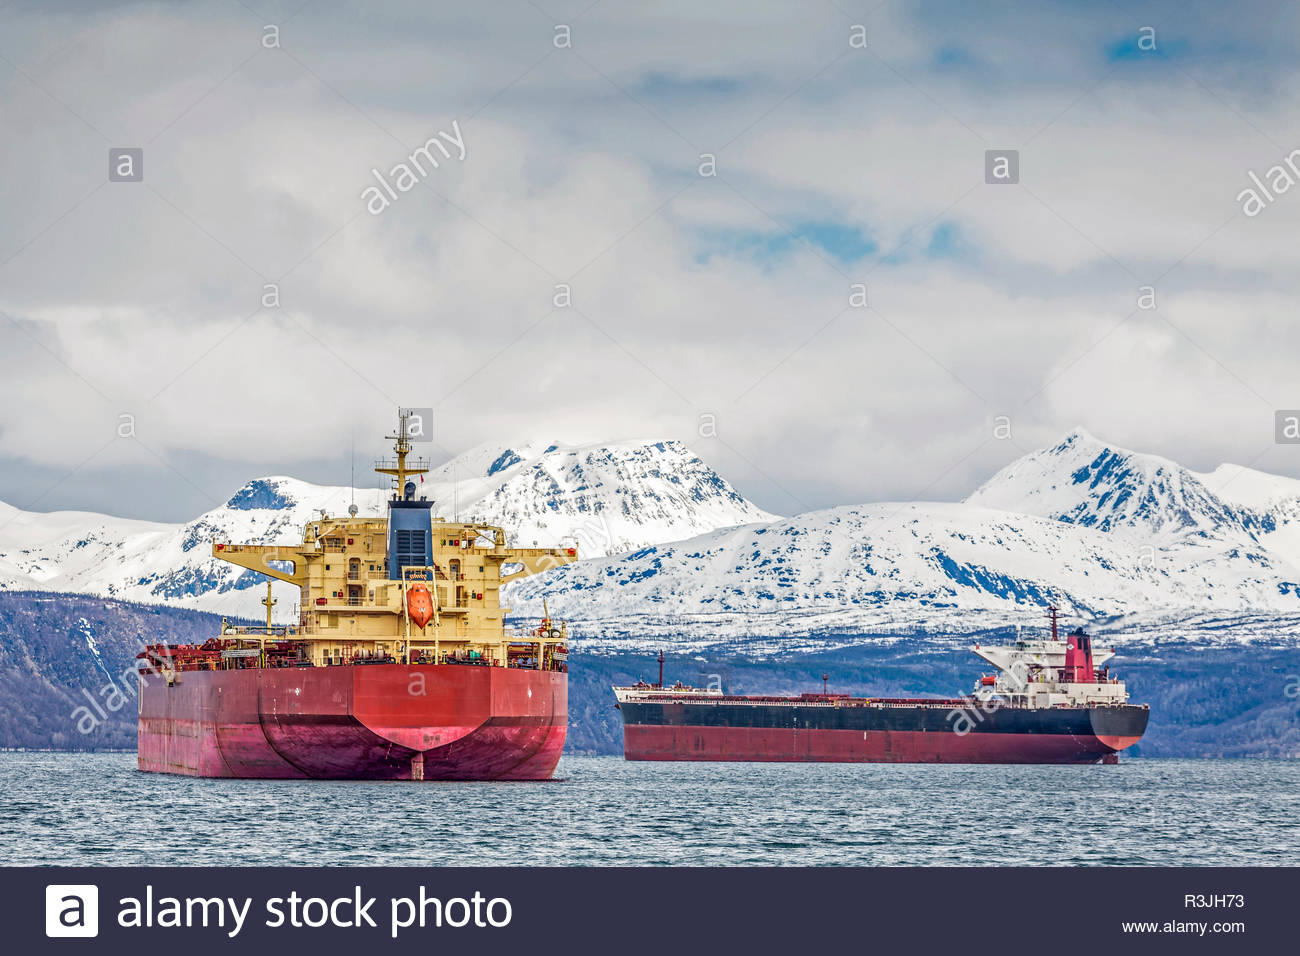 freighter in narvik - Stock Image